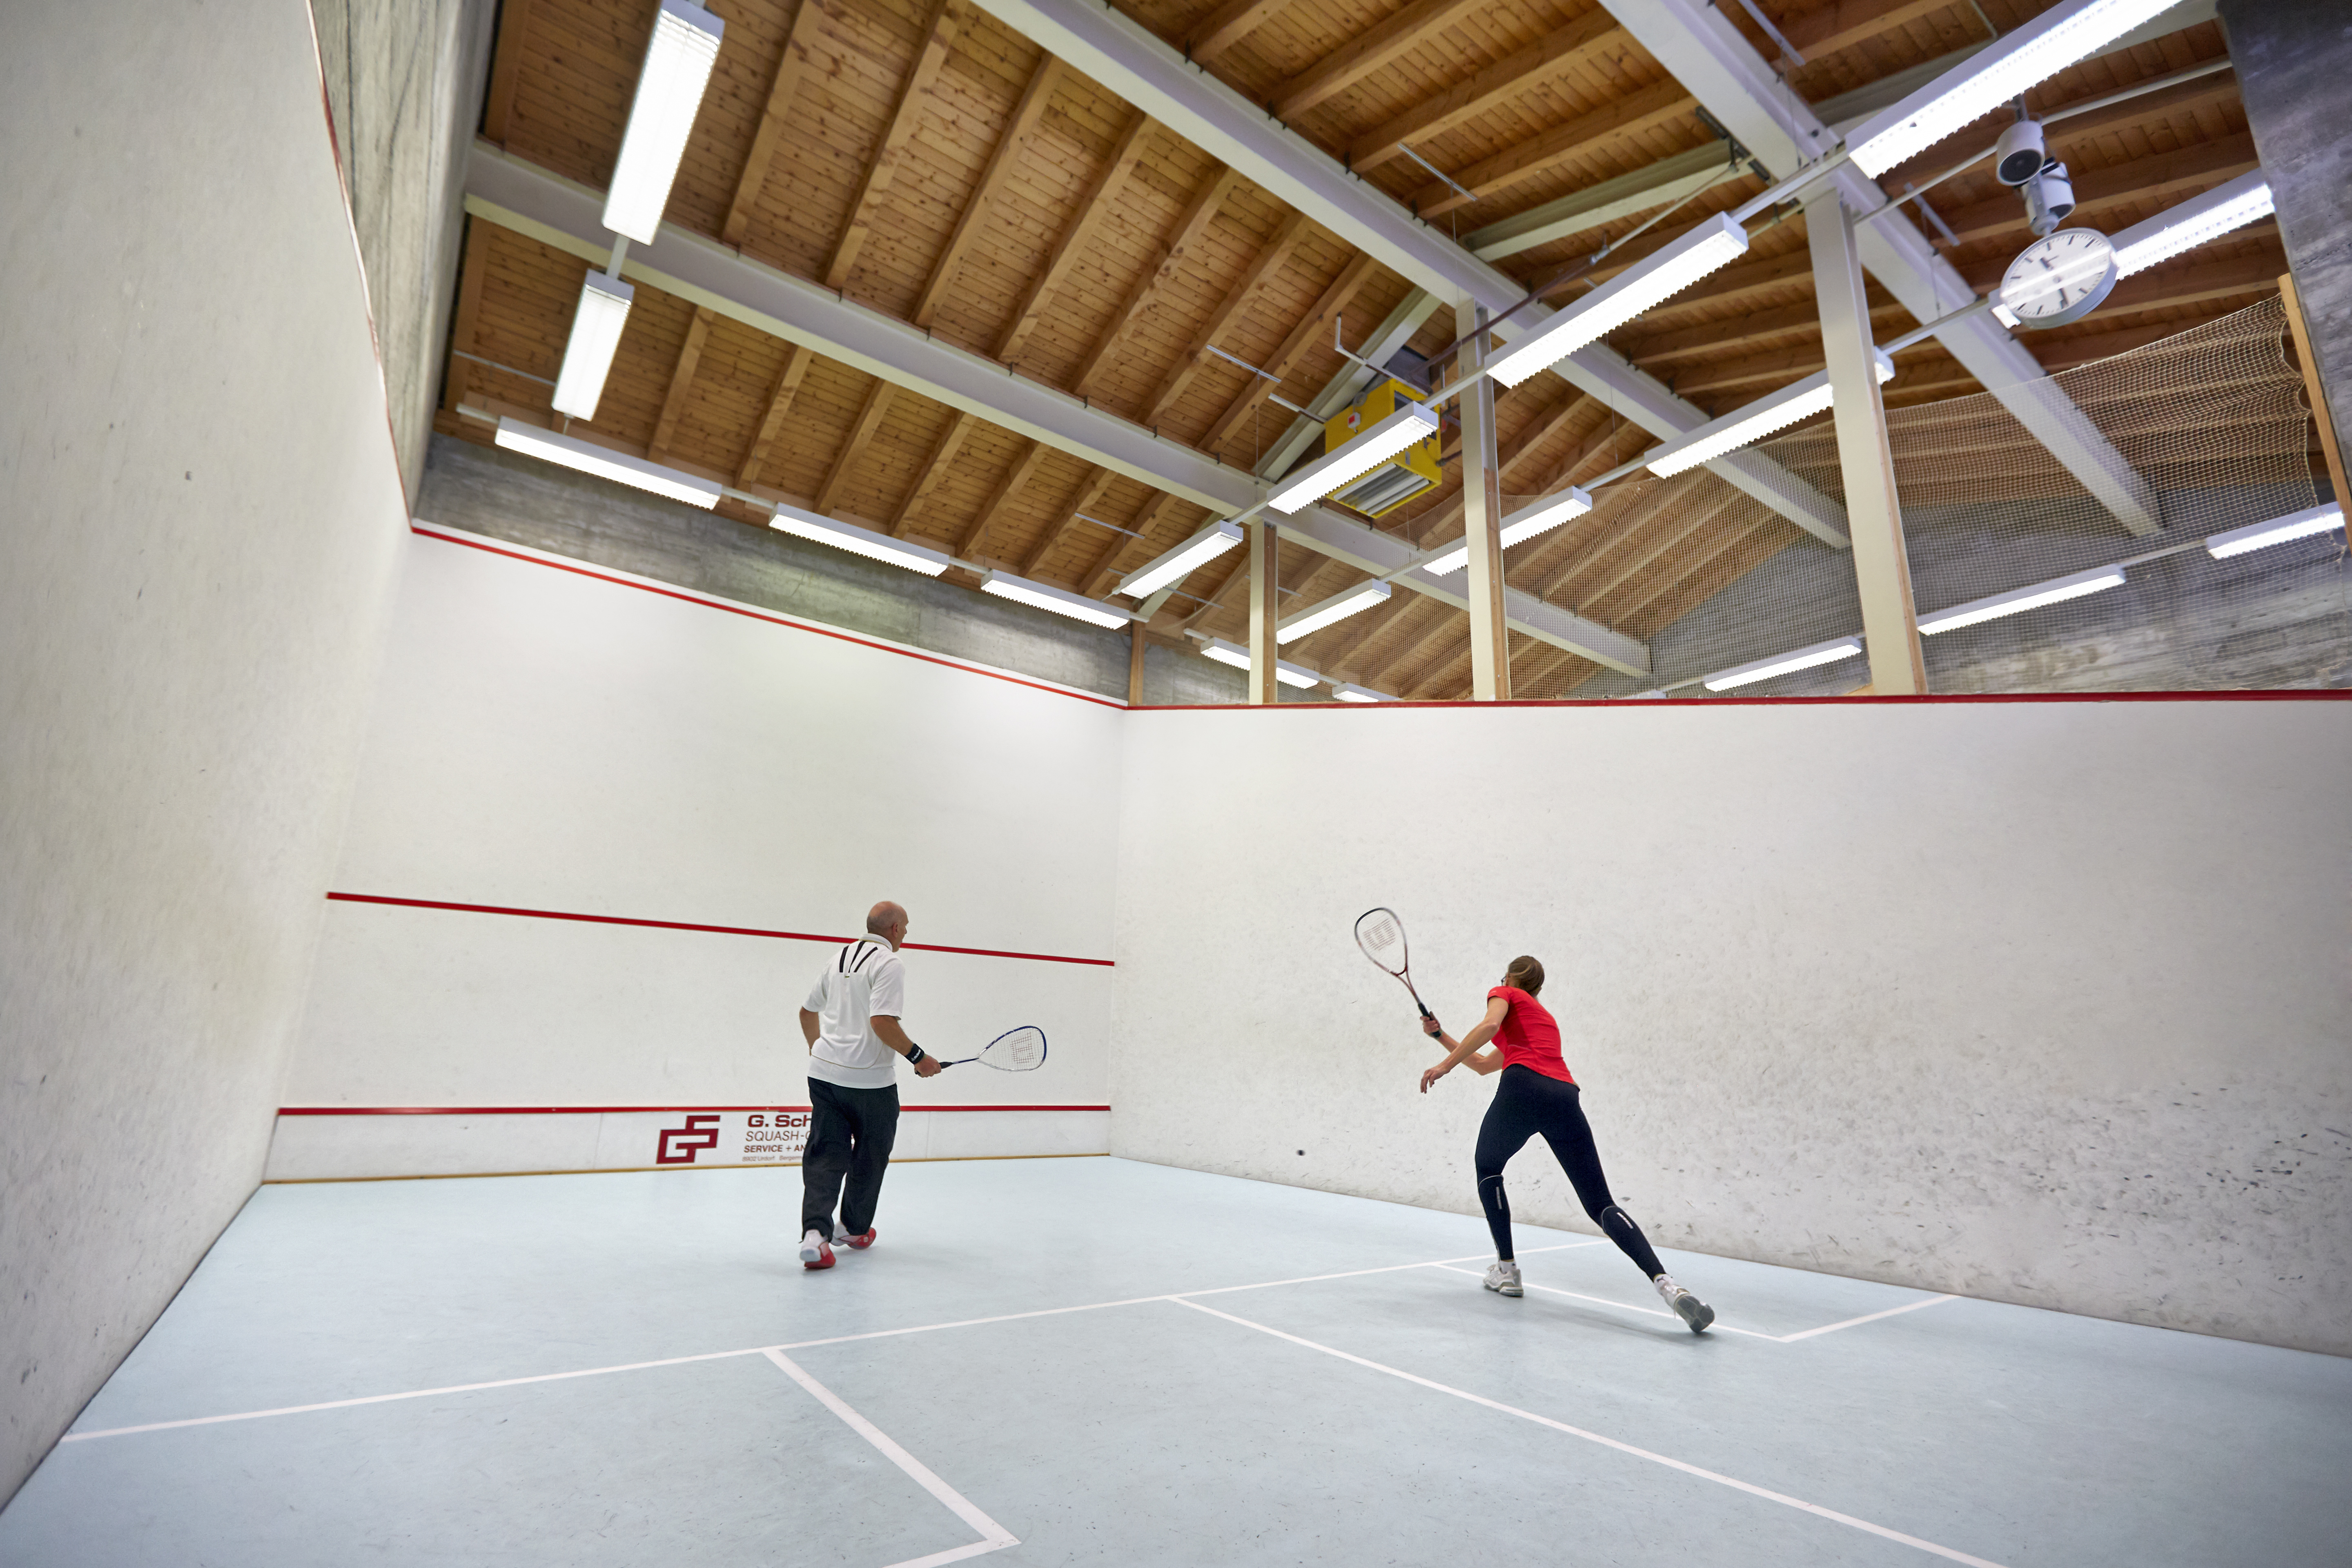 Tennis & Squash Center St. Moritz Slide 3